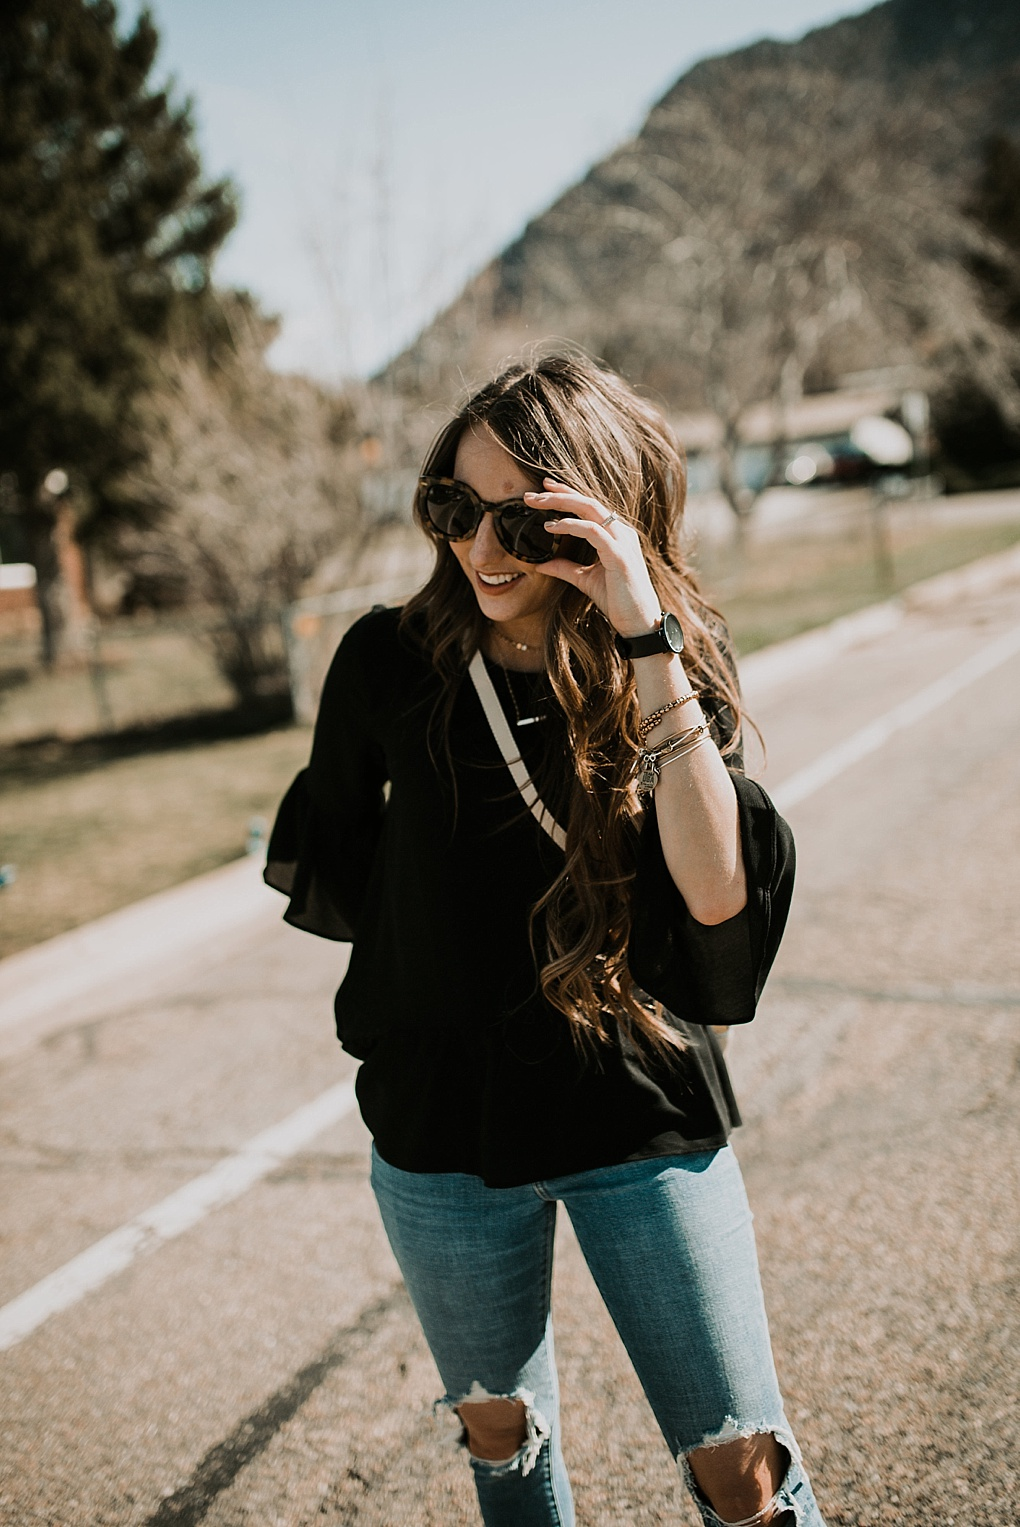 girl standing in road with karen walker sunglasses on with levi distressed high waisted jeans michael kors crossbody bag and flats on with loosely curled brown hair with caramel highlights